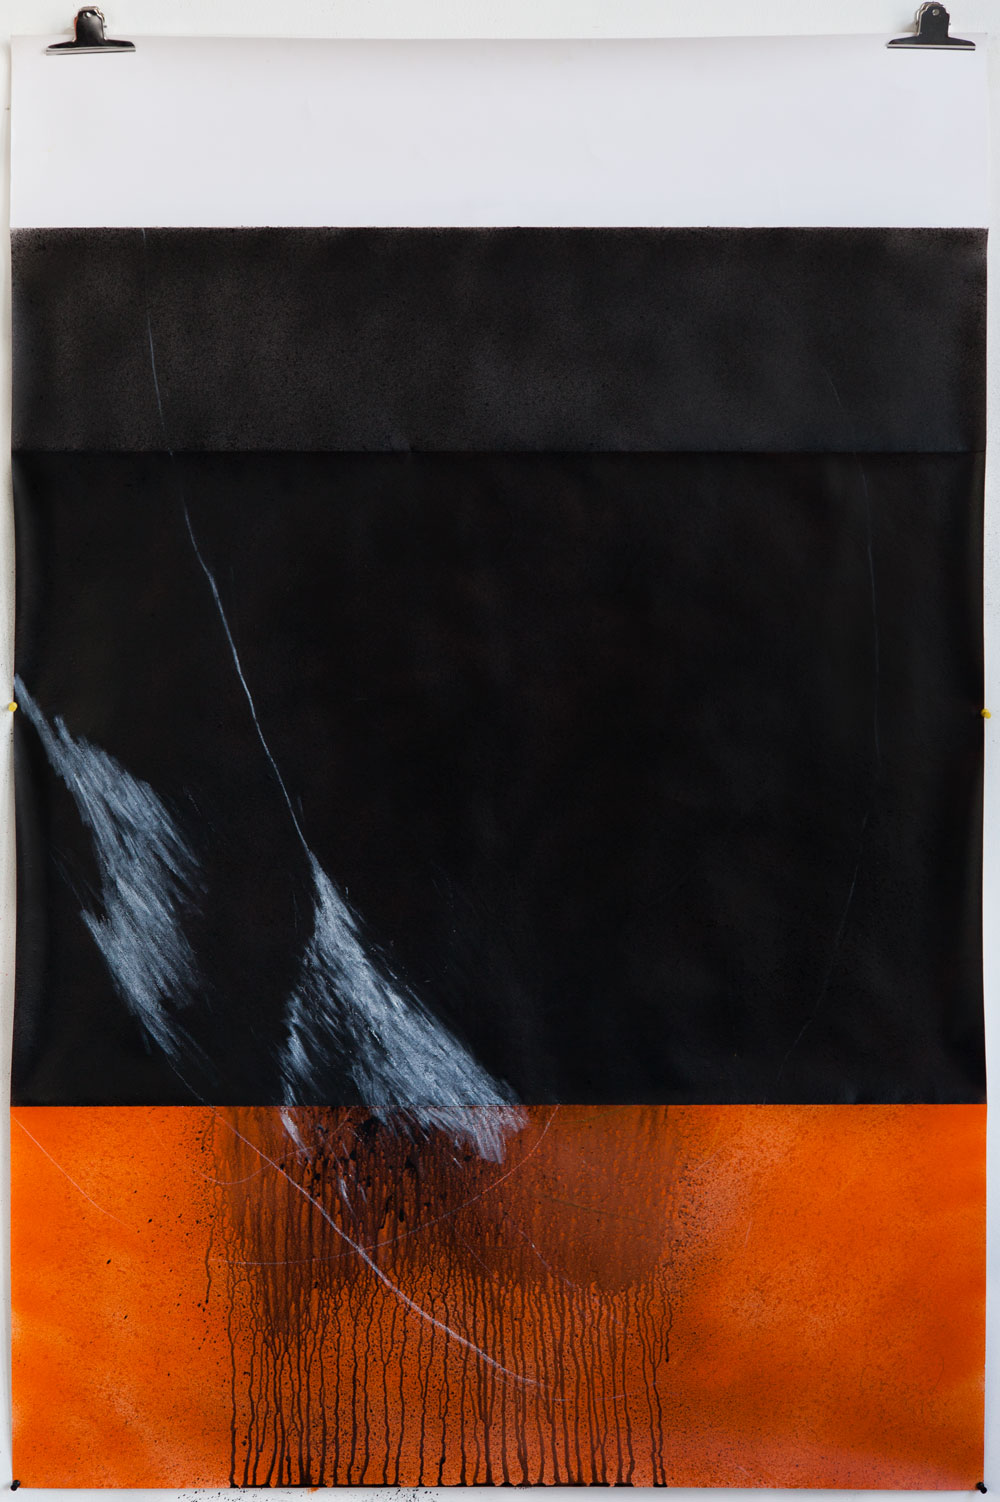 Stephane Leonard / ot / lacquer and oil on paper / 110 x 166 cm / 2013